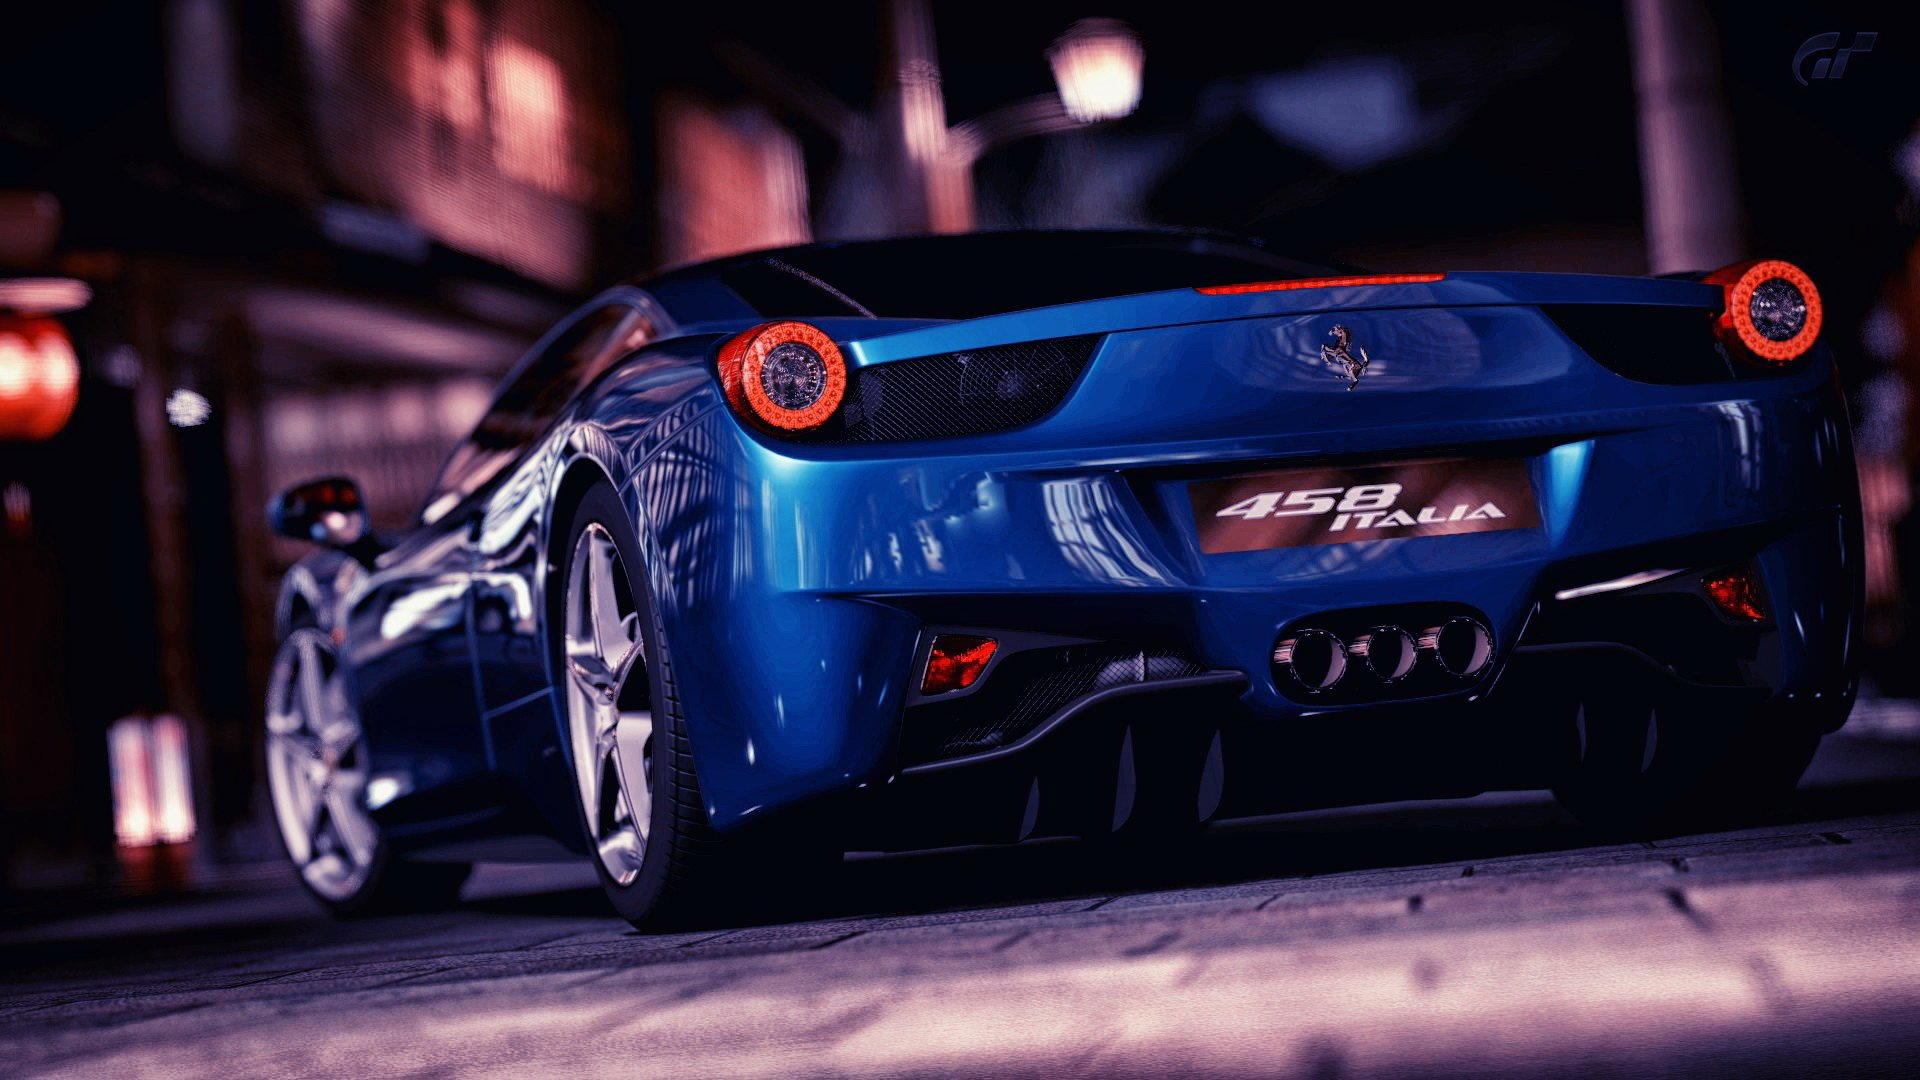 1128 Ferrari Hd Wallpapers Background Images Wallpaper Abyss